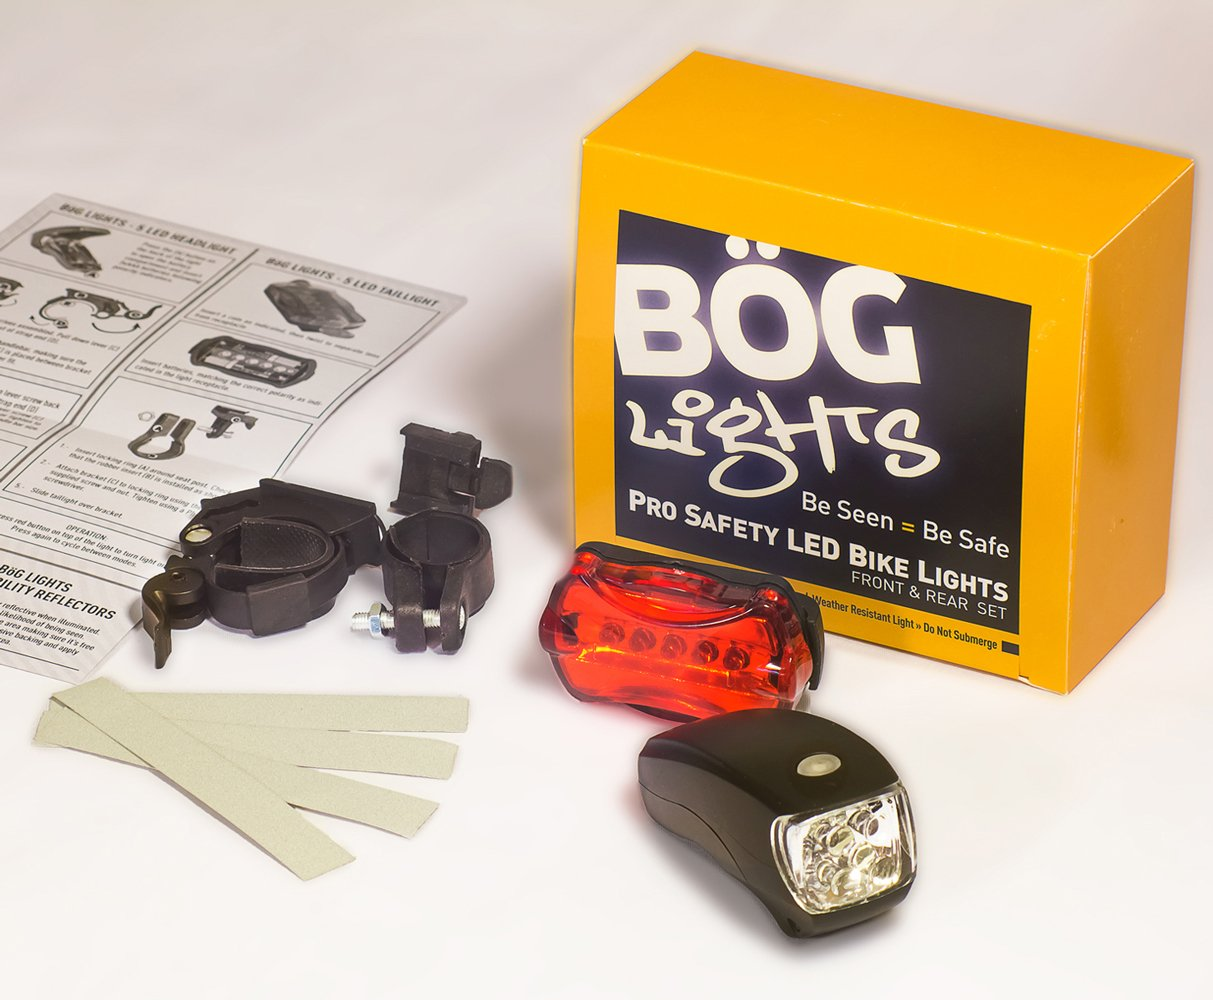 LED BIKE LIGHT SET. Bicycle headlight & taillight combo. Ultrabright 5 LED kit.. Use on bike or scooter. FREE high visibility reflectors. ~ In BG Lights gift box as pictured by BoG Products (Image #8)